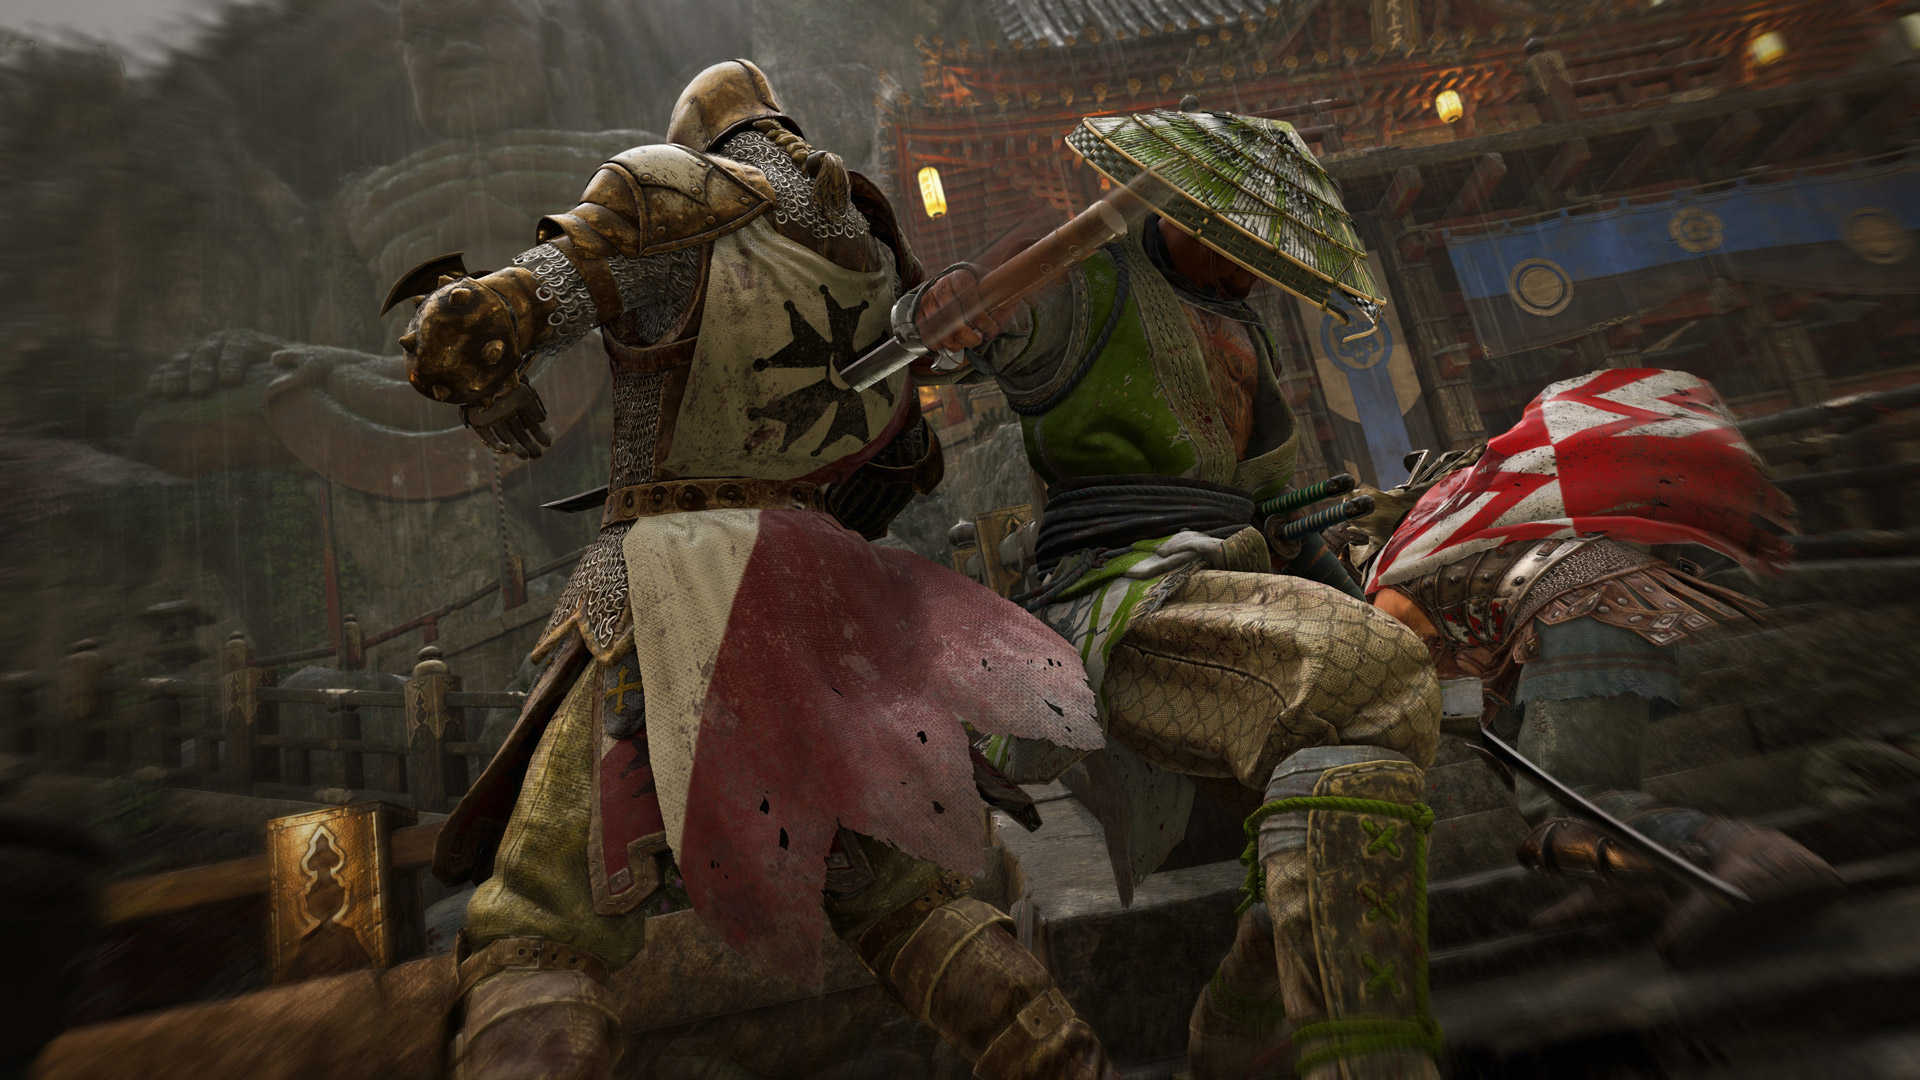 Free For Honor Wallpaper in 1920x1080